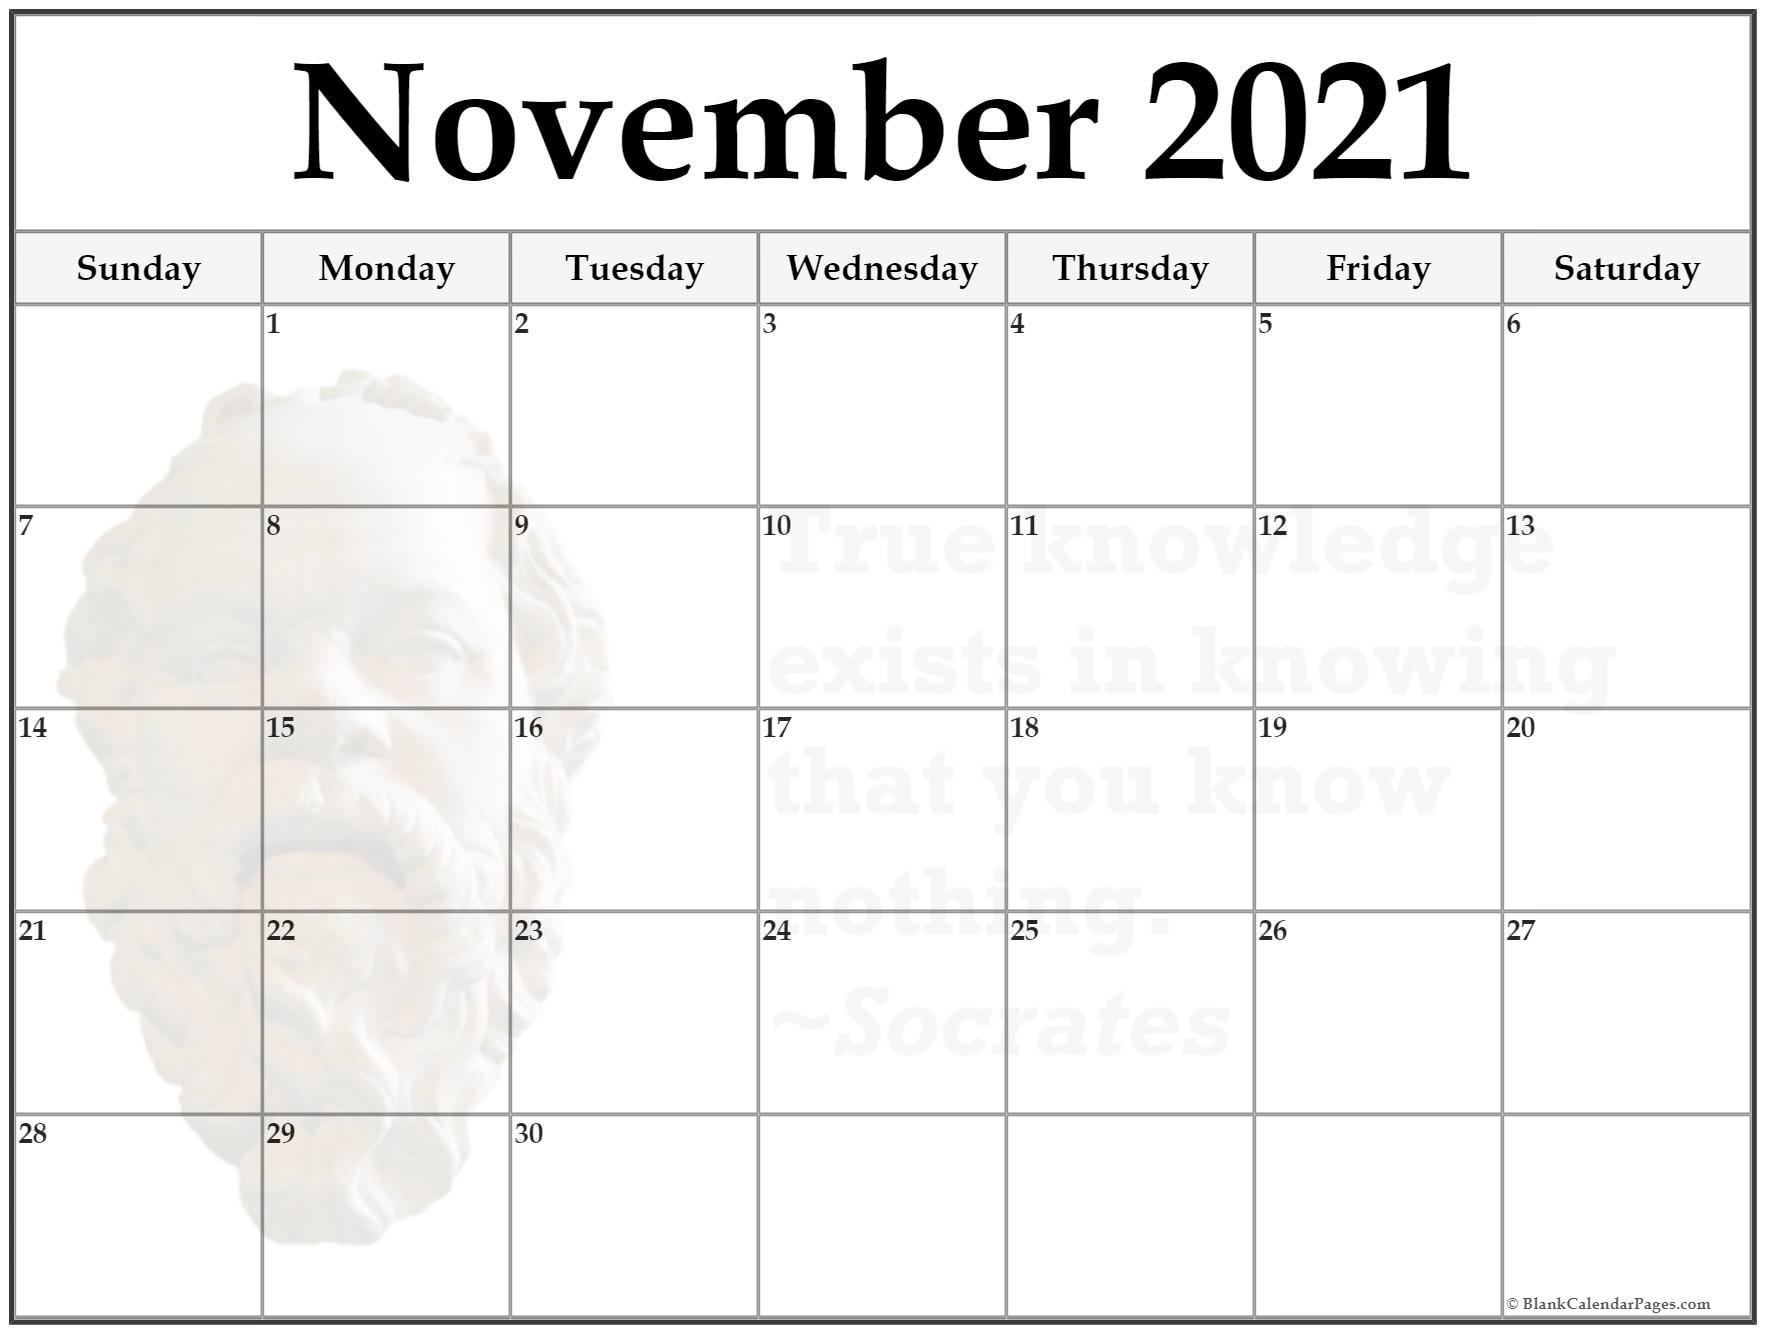 November 2020 monthly quote calendar template. True knowledge exists in knowing that you know nothing. ~Socrates